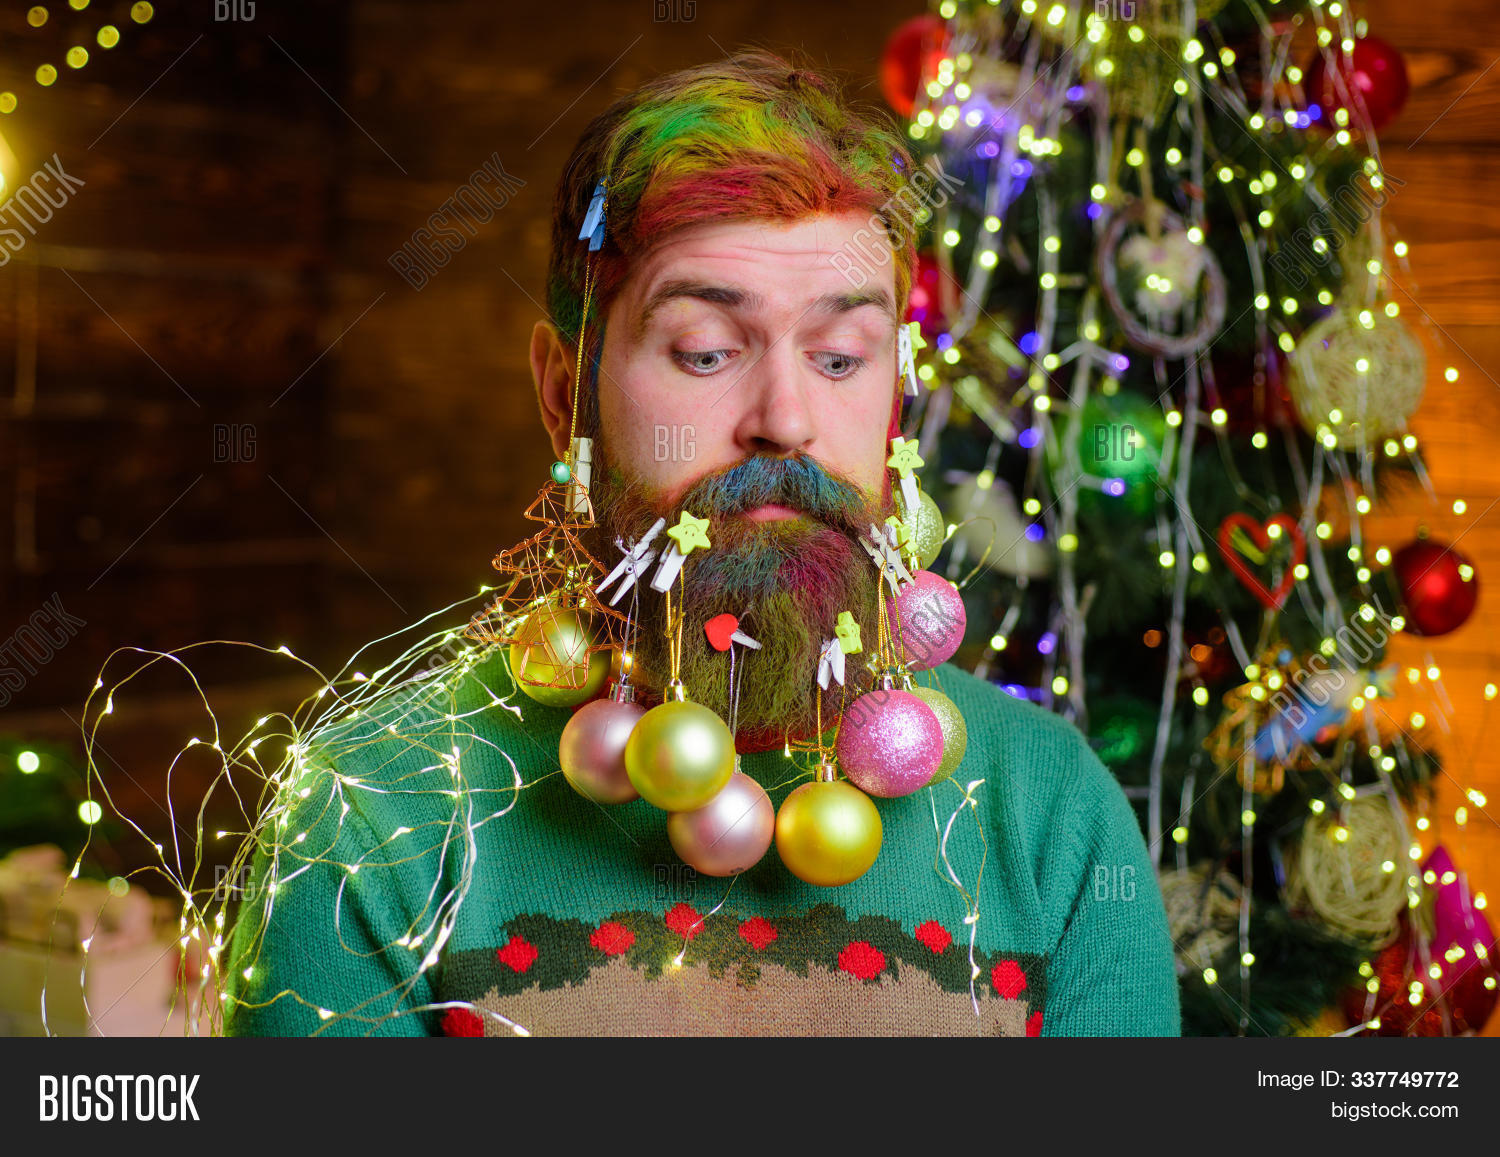 ball,beard,bearded,celebrate,celebrating,celebration,christmas,claus,clothes,costume,creative,december,decor,decorate,decoration,decorative,design,emotion,fashion,festive,fir-tree,garland,happy,holiday,idea,jersey,male,merry,modern,party,pullover,santa,season,seasonal,stylish,surprise,surprised,sweater,time,traditional,warm,weekend,winter,wintry,wishes,xmas